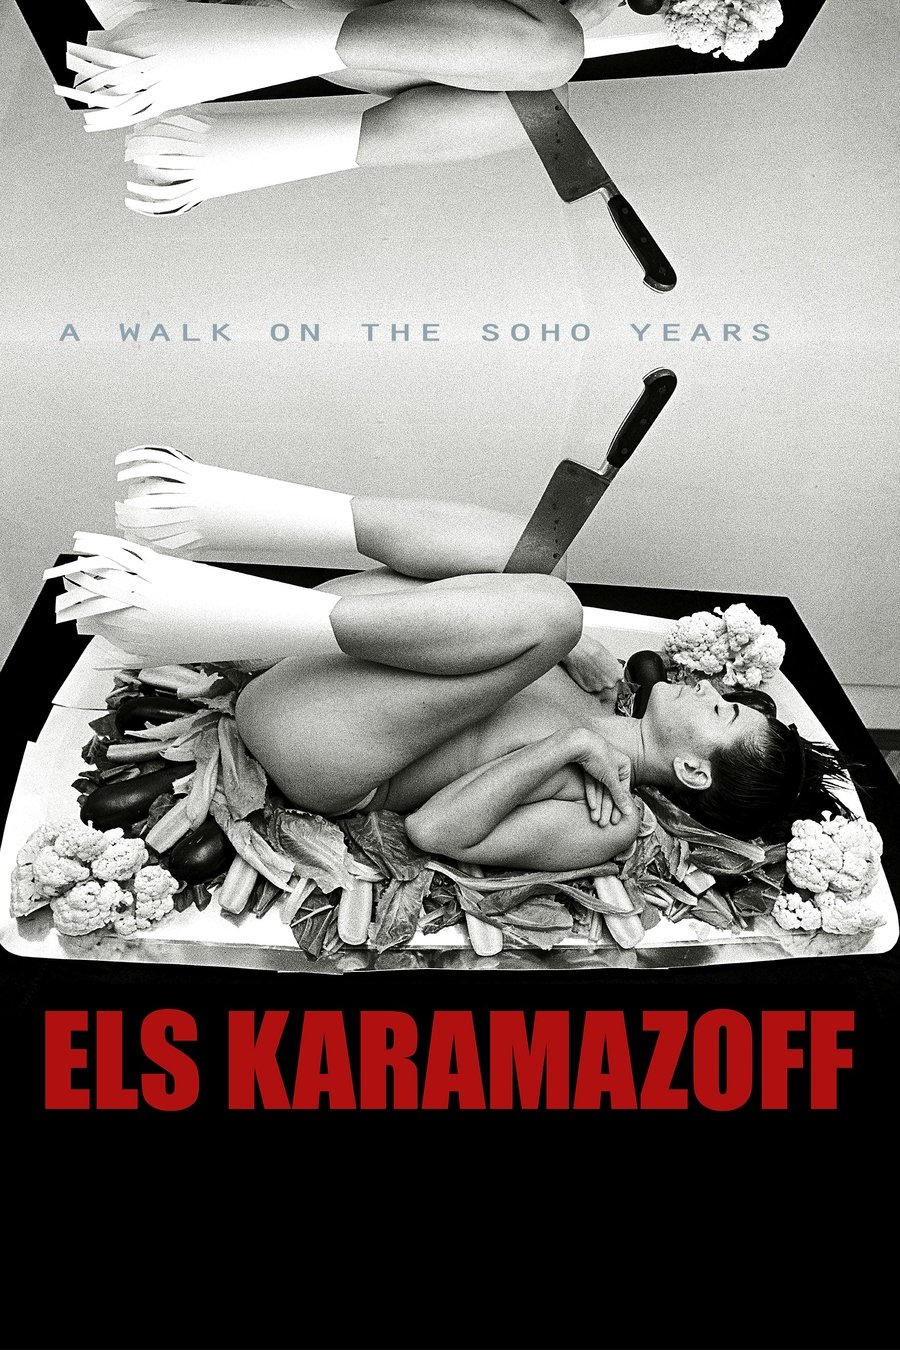 Los Karamazoff, a walk on the SoHo years